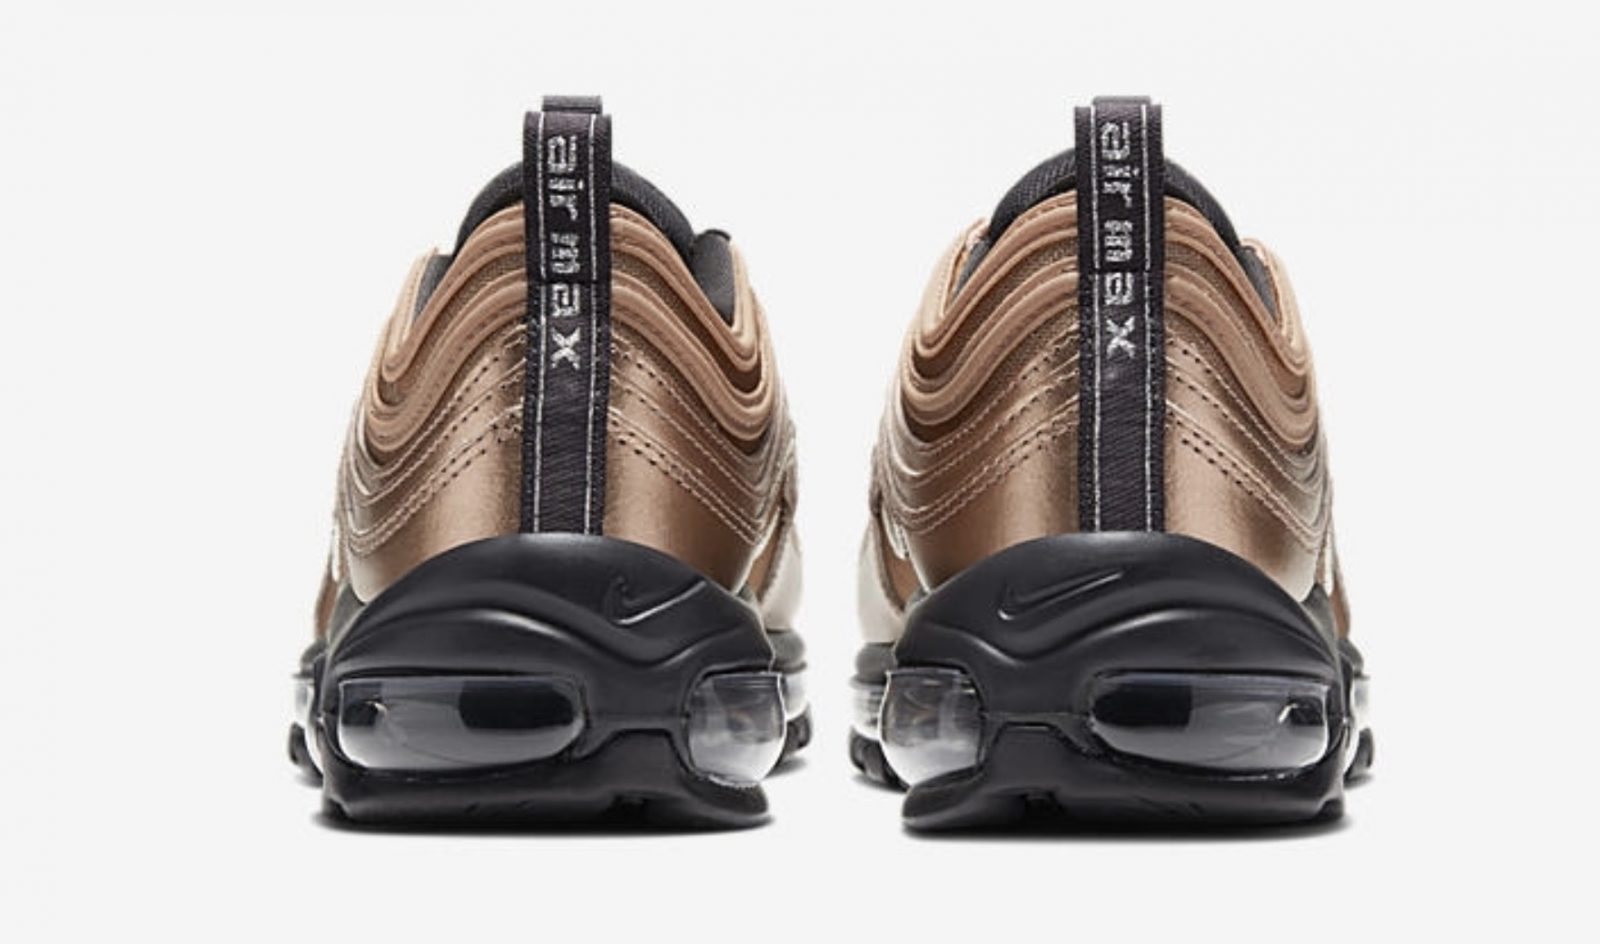 Get Seasonal In The Latest Nike Air Max 97 Metallic Gold heel